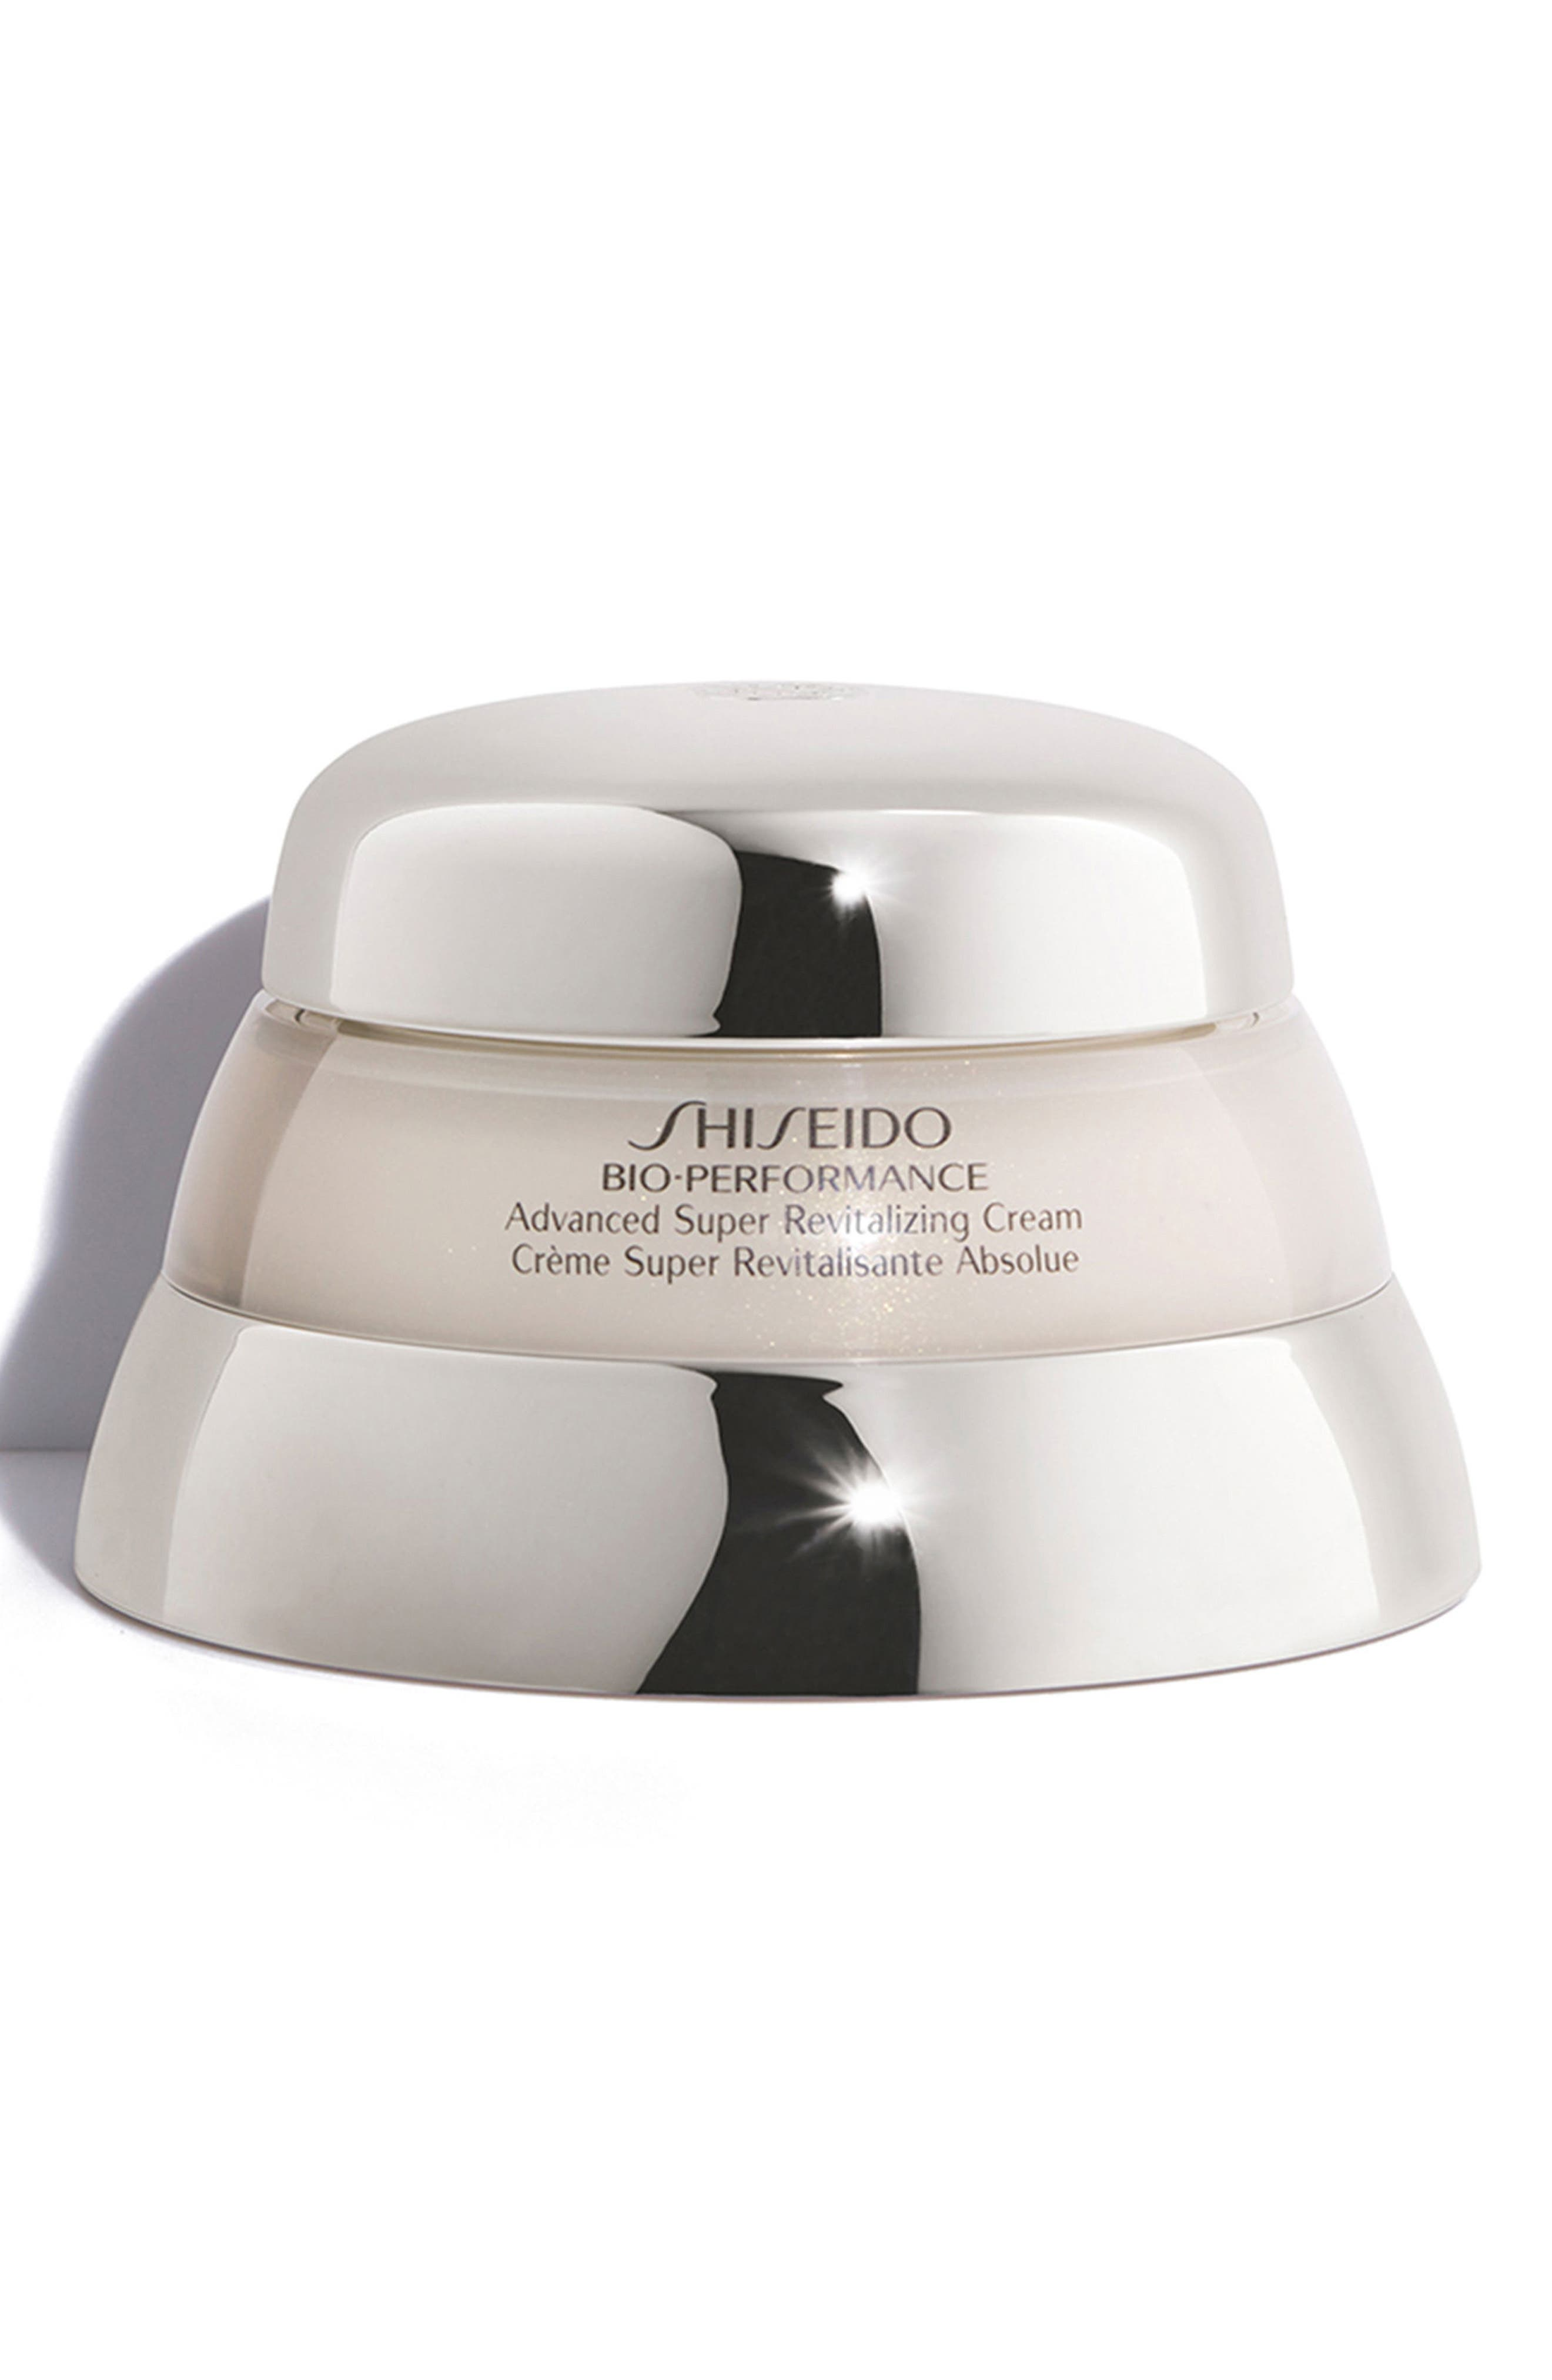 'Bio-Performance' Advance Super Revitalizing Cream,                             Main thumbnail 1, color,                             No Color